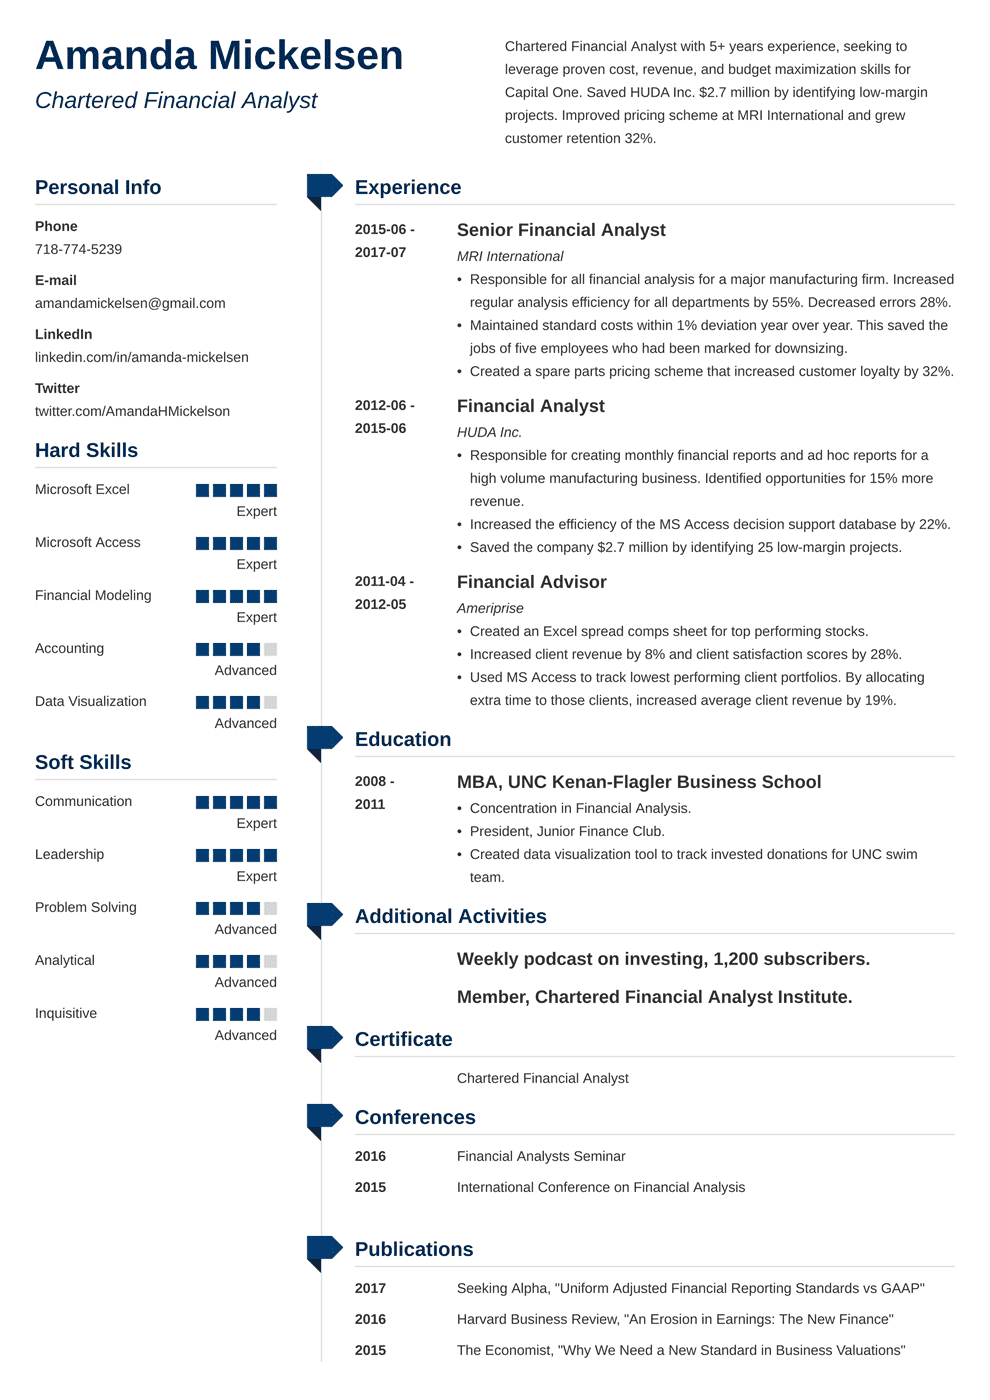 Financial Analyst Resume Examples (Guide & Templates) in